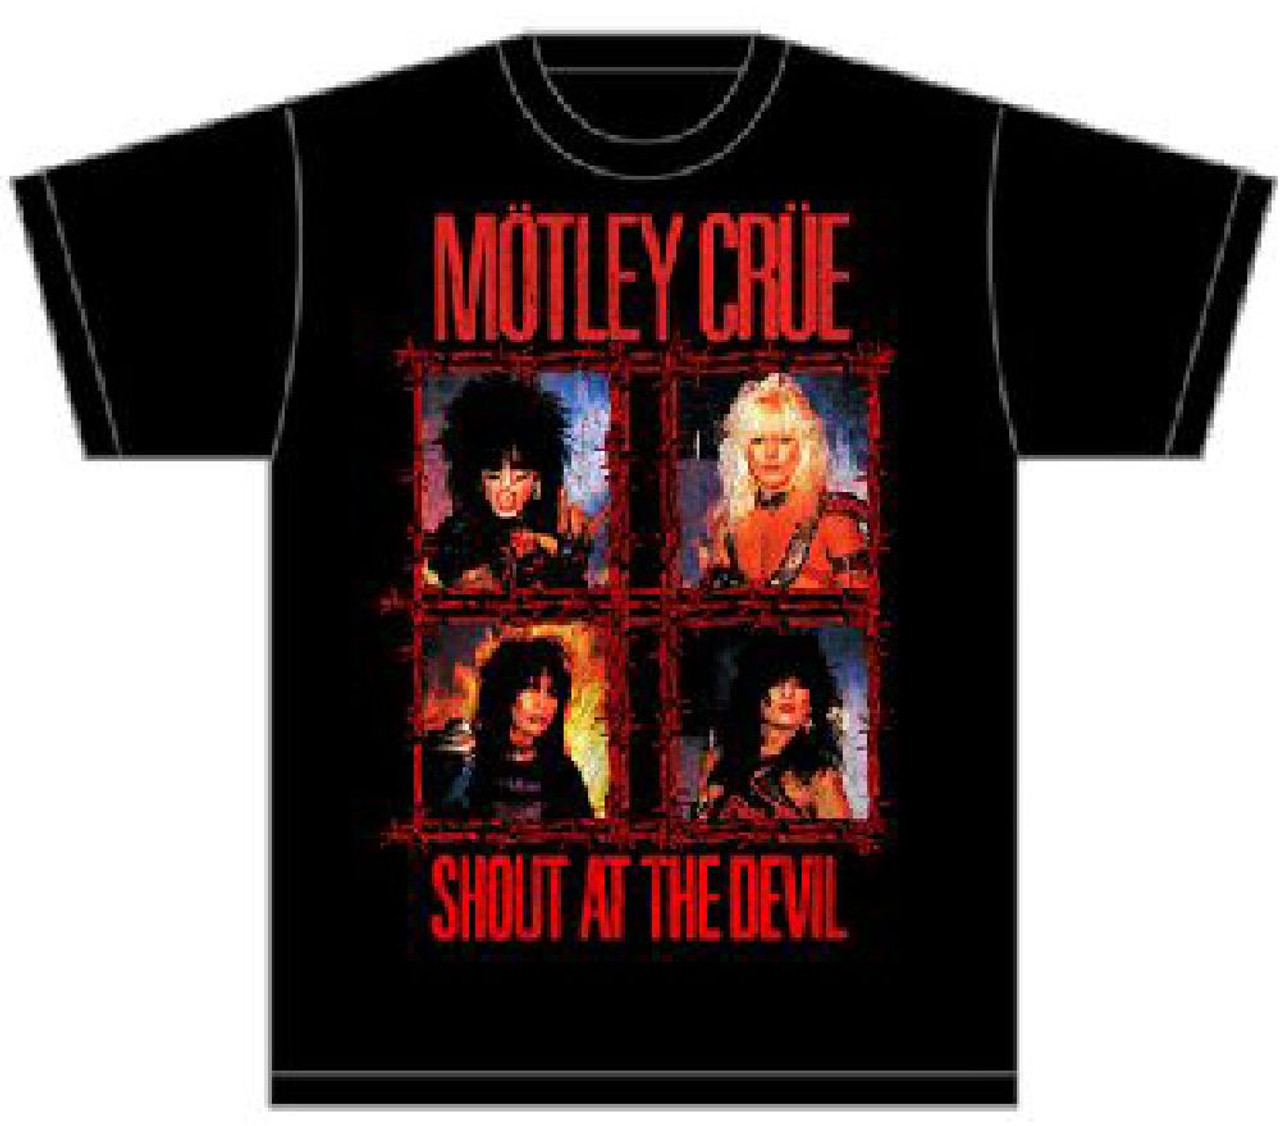 952294555b Motley Crue Shout at the Devil Album Cover Artwork Men s Black T-shirt